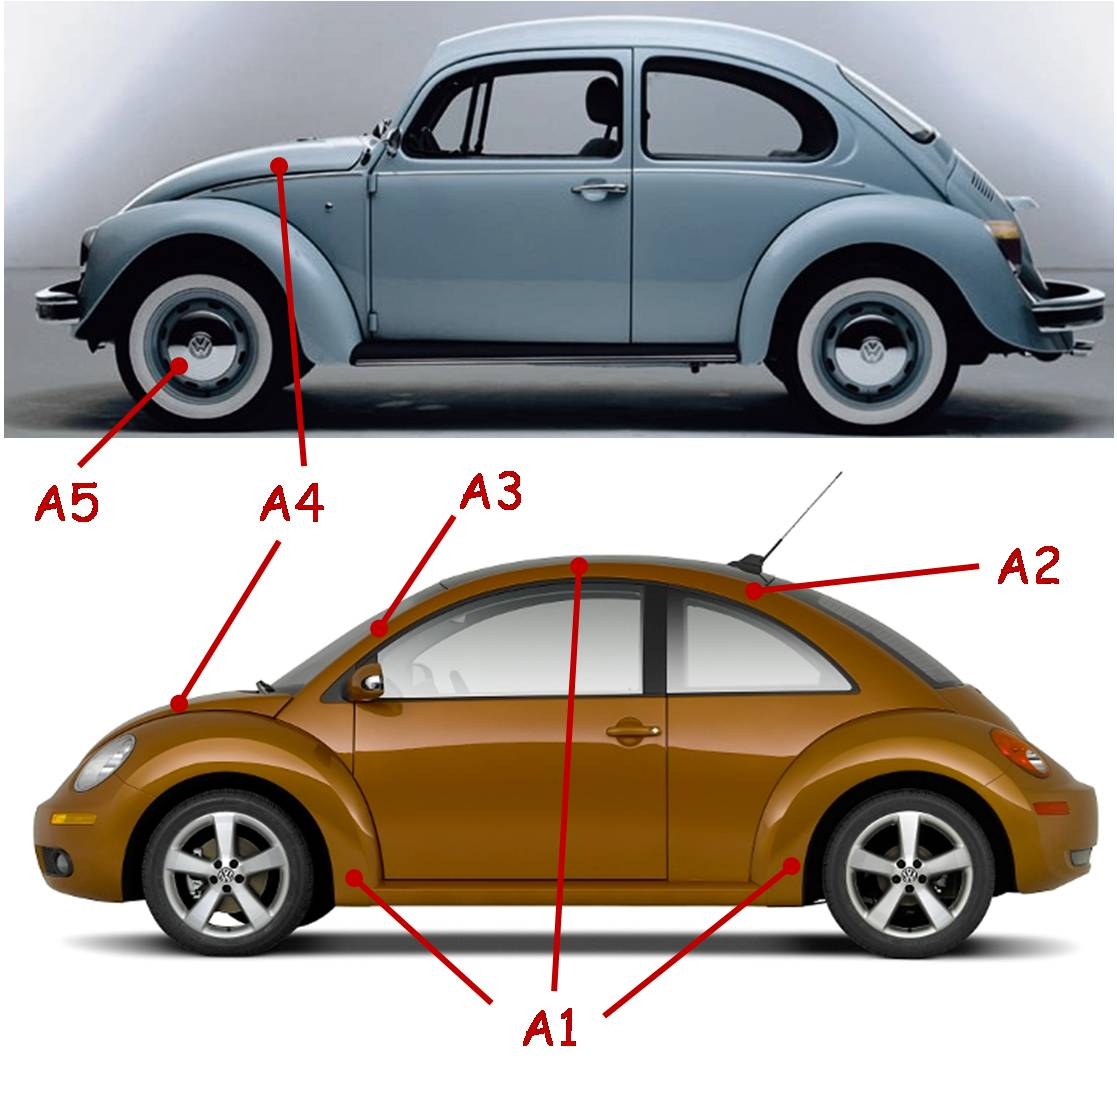 Design of beetle car -  Missed The Opportunity To Recreate Some Of The Basic Beetle Styling Cues By Choosing Not To Replicate The Embossed Pattern On The Hood Of The New Car